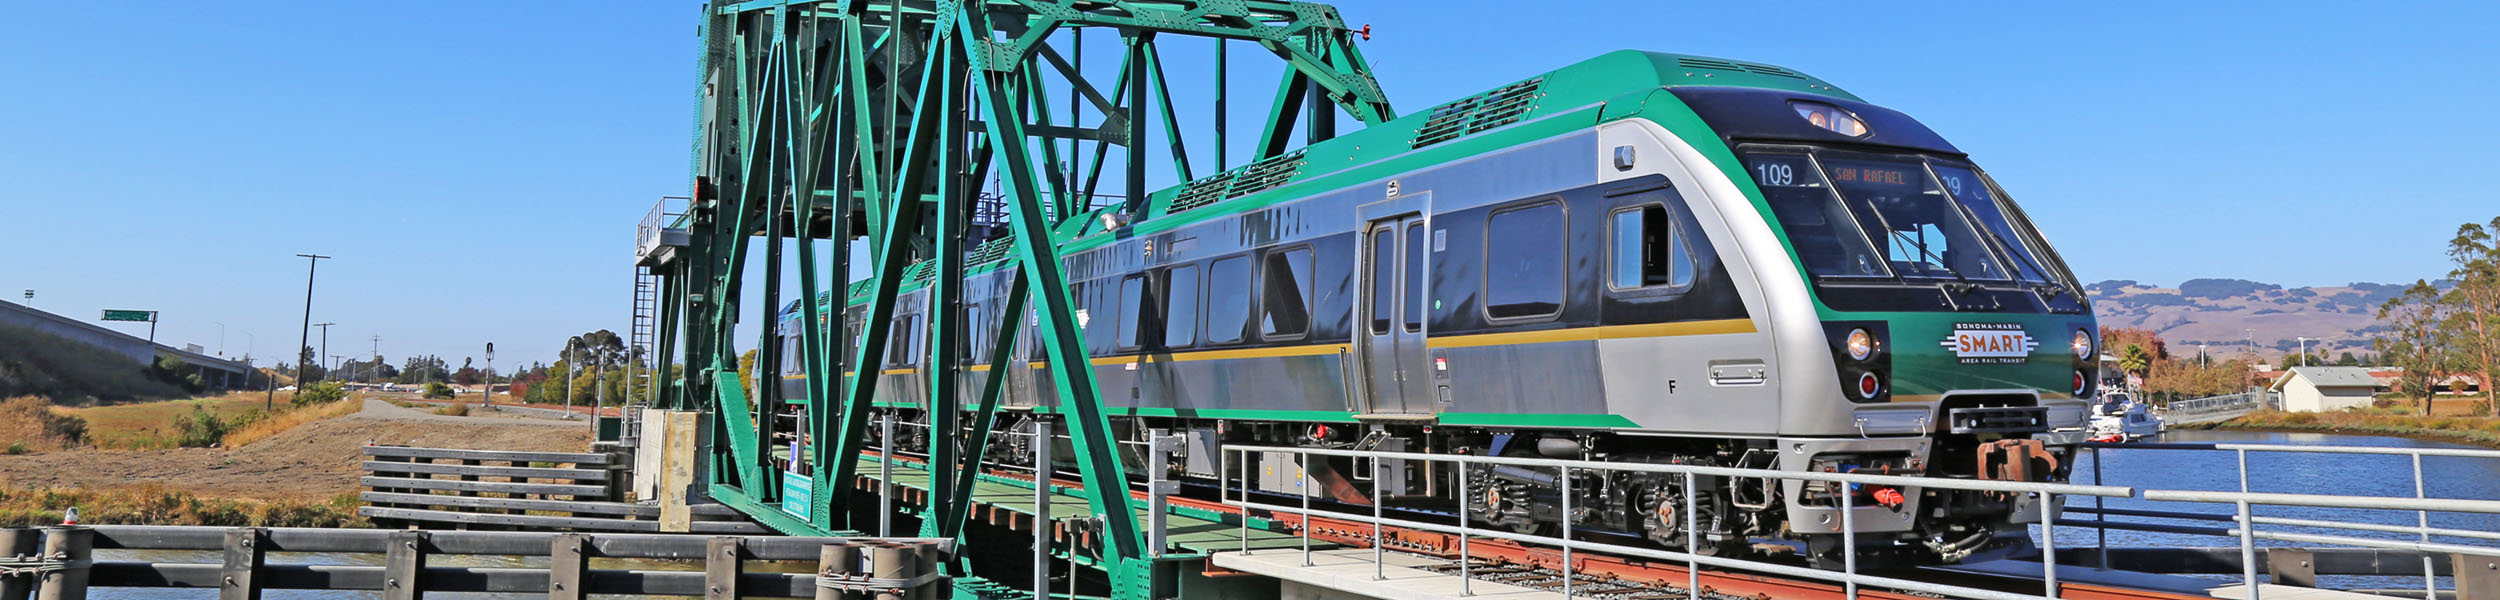 SMART Train crosses Haystack Bridge in Petaluma.